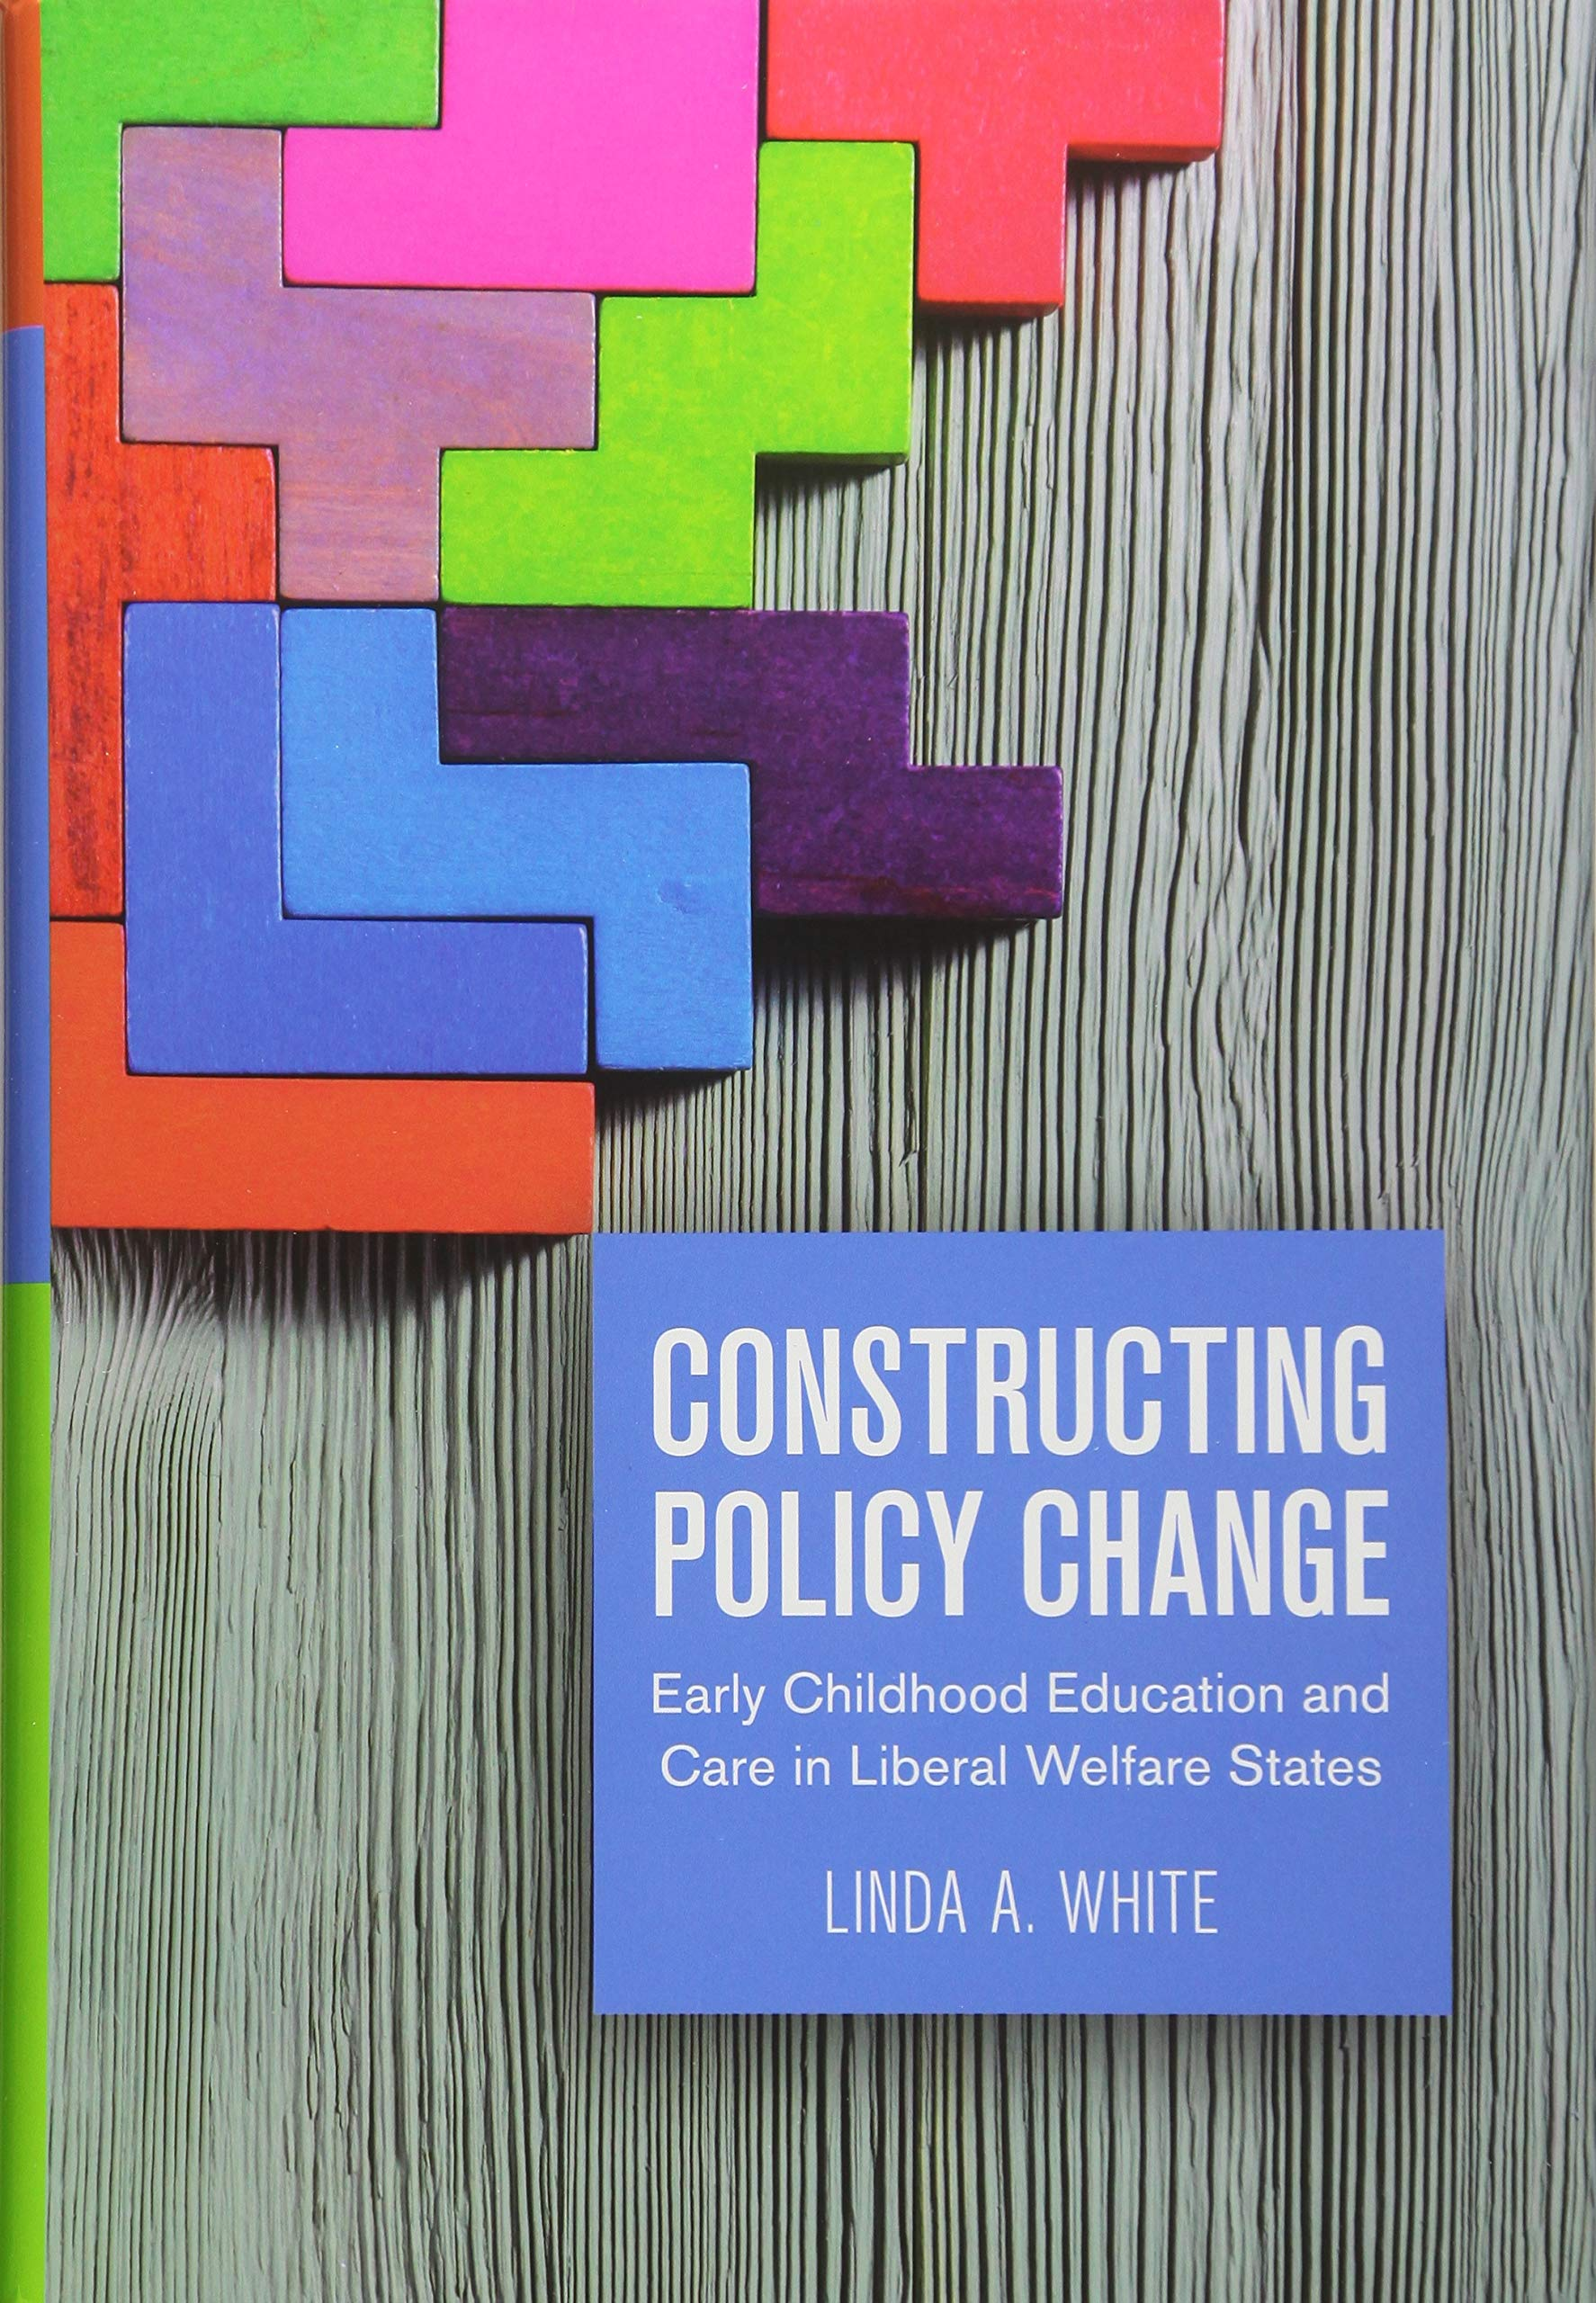 Early Childhood Education And Care Ecec >> Constructing Policy Change Early Childhood Education And Care In